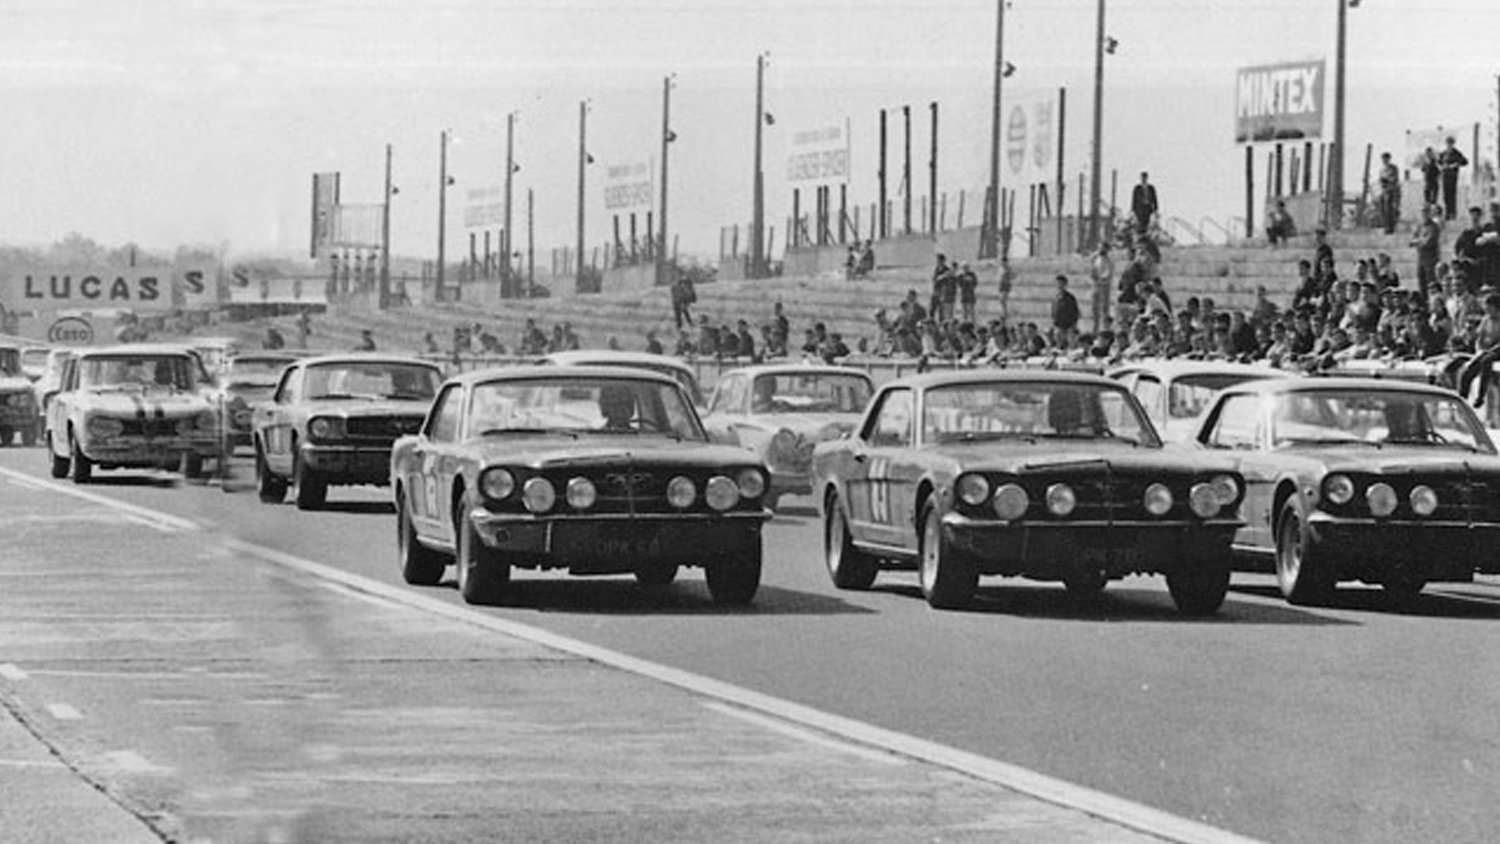 The Mustangs were larger and more powerful than their competitors in the Touring class. They also proved unbeatable.